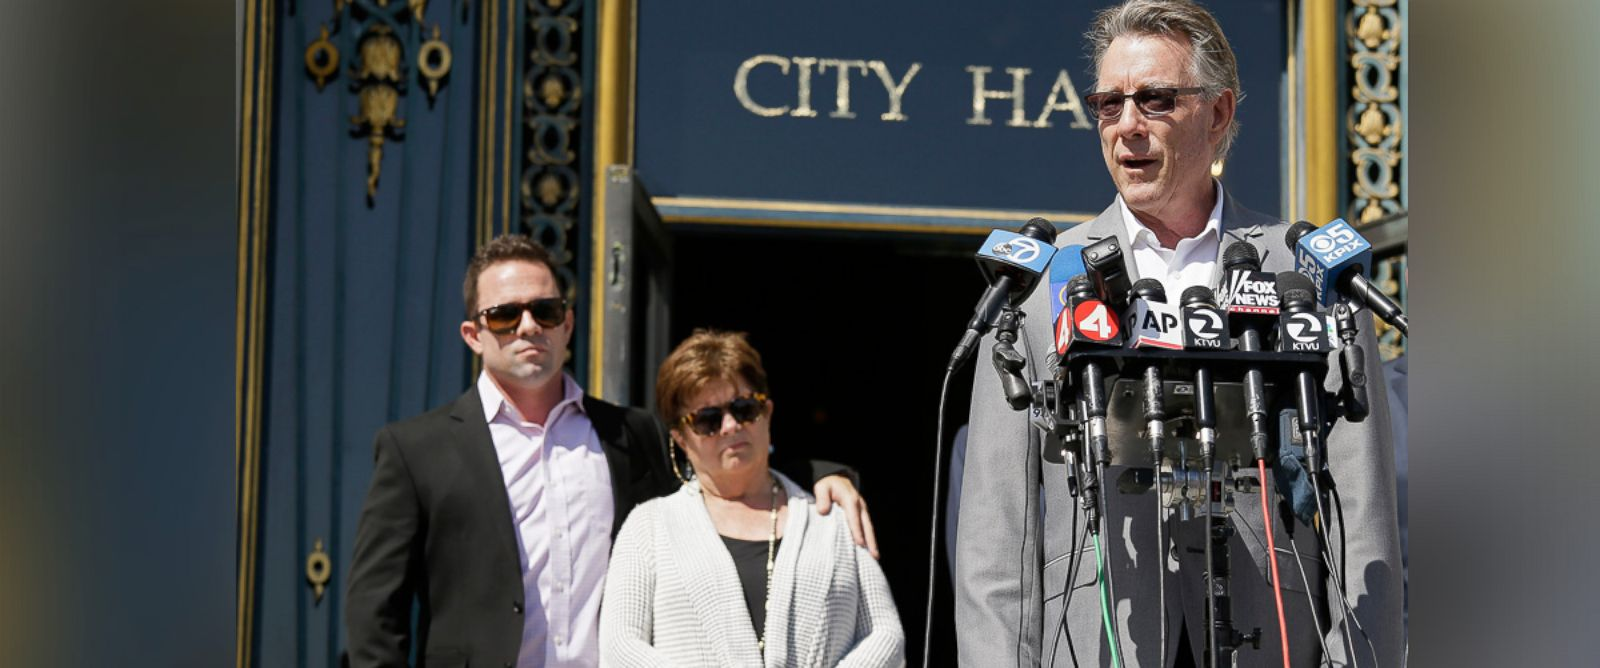 PHOTO: Jim Steinle, right, father of Kathryn Steinle, along with Brad Steinle and Liz Sullivan, the brother and mother of Kathryn Steinle, answer questions during a news conference on the steps of City Hall Tuesday, Sept. 1, 2015, in San Francisco.